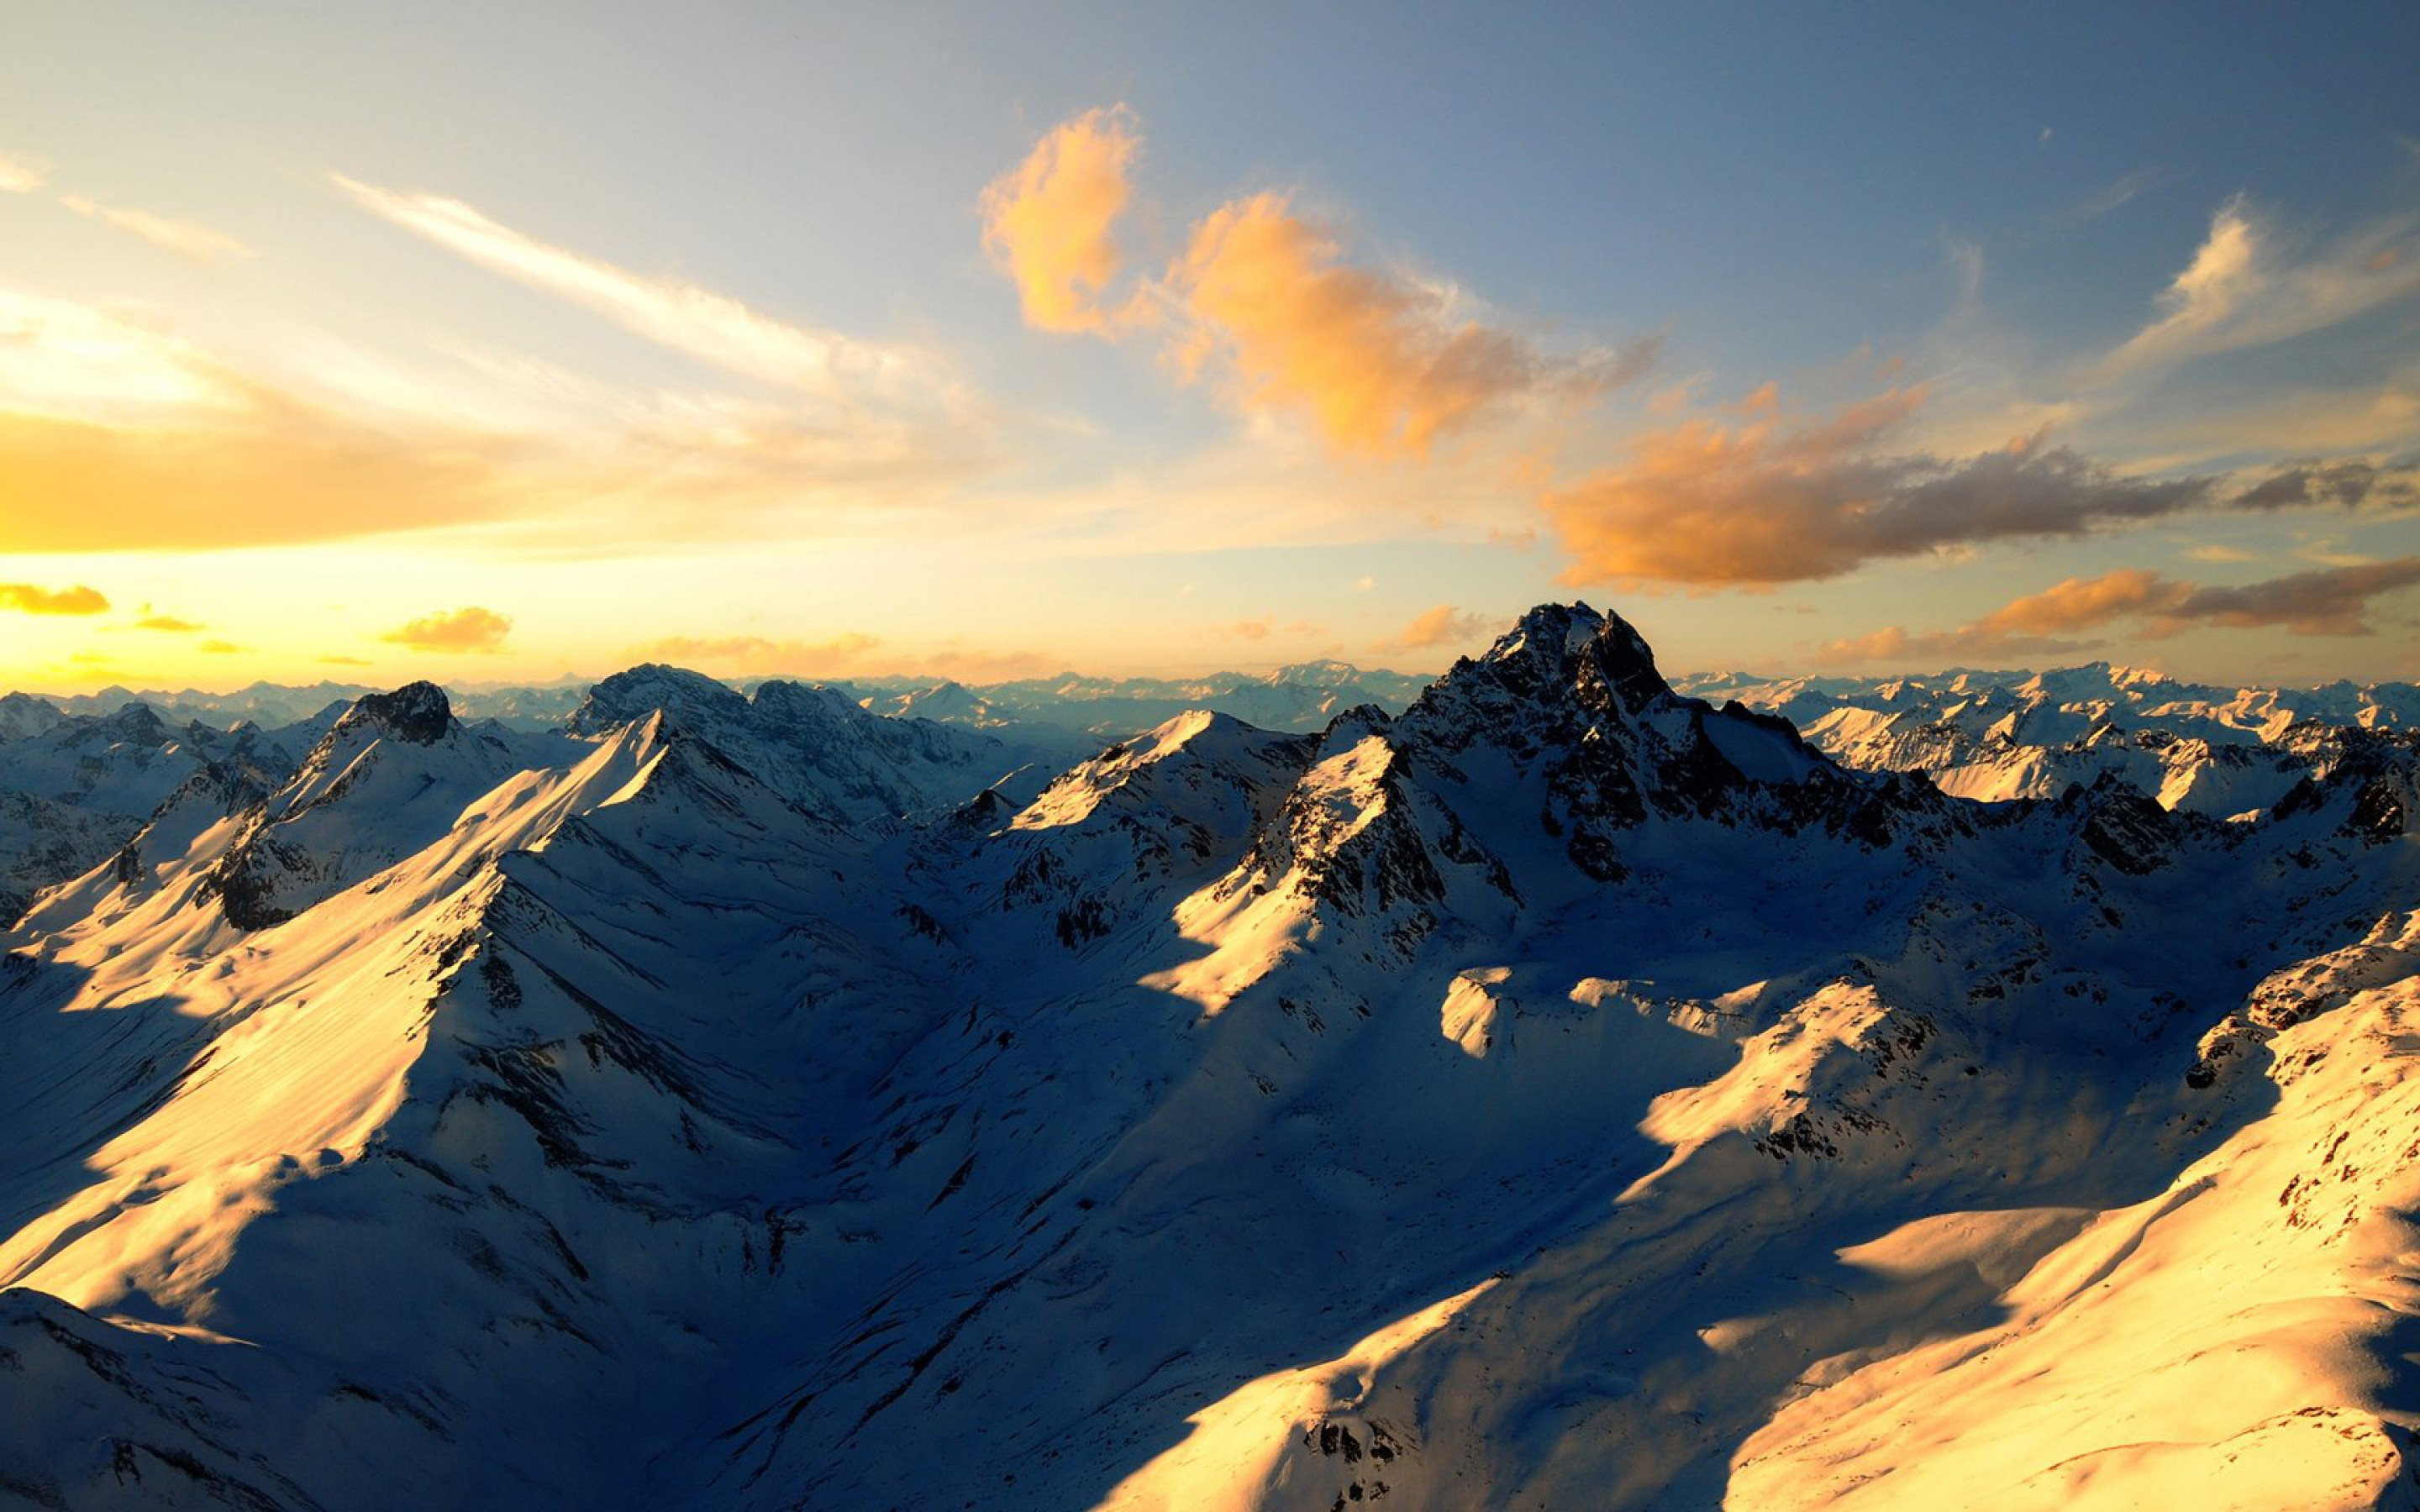 Sunset Over Snow Capped Mountains Full HD Wallpaper And Background